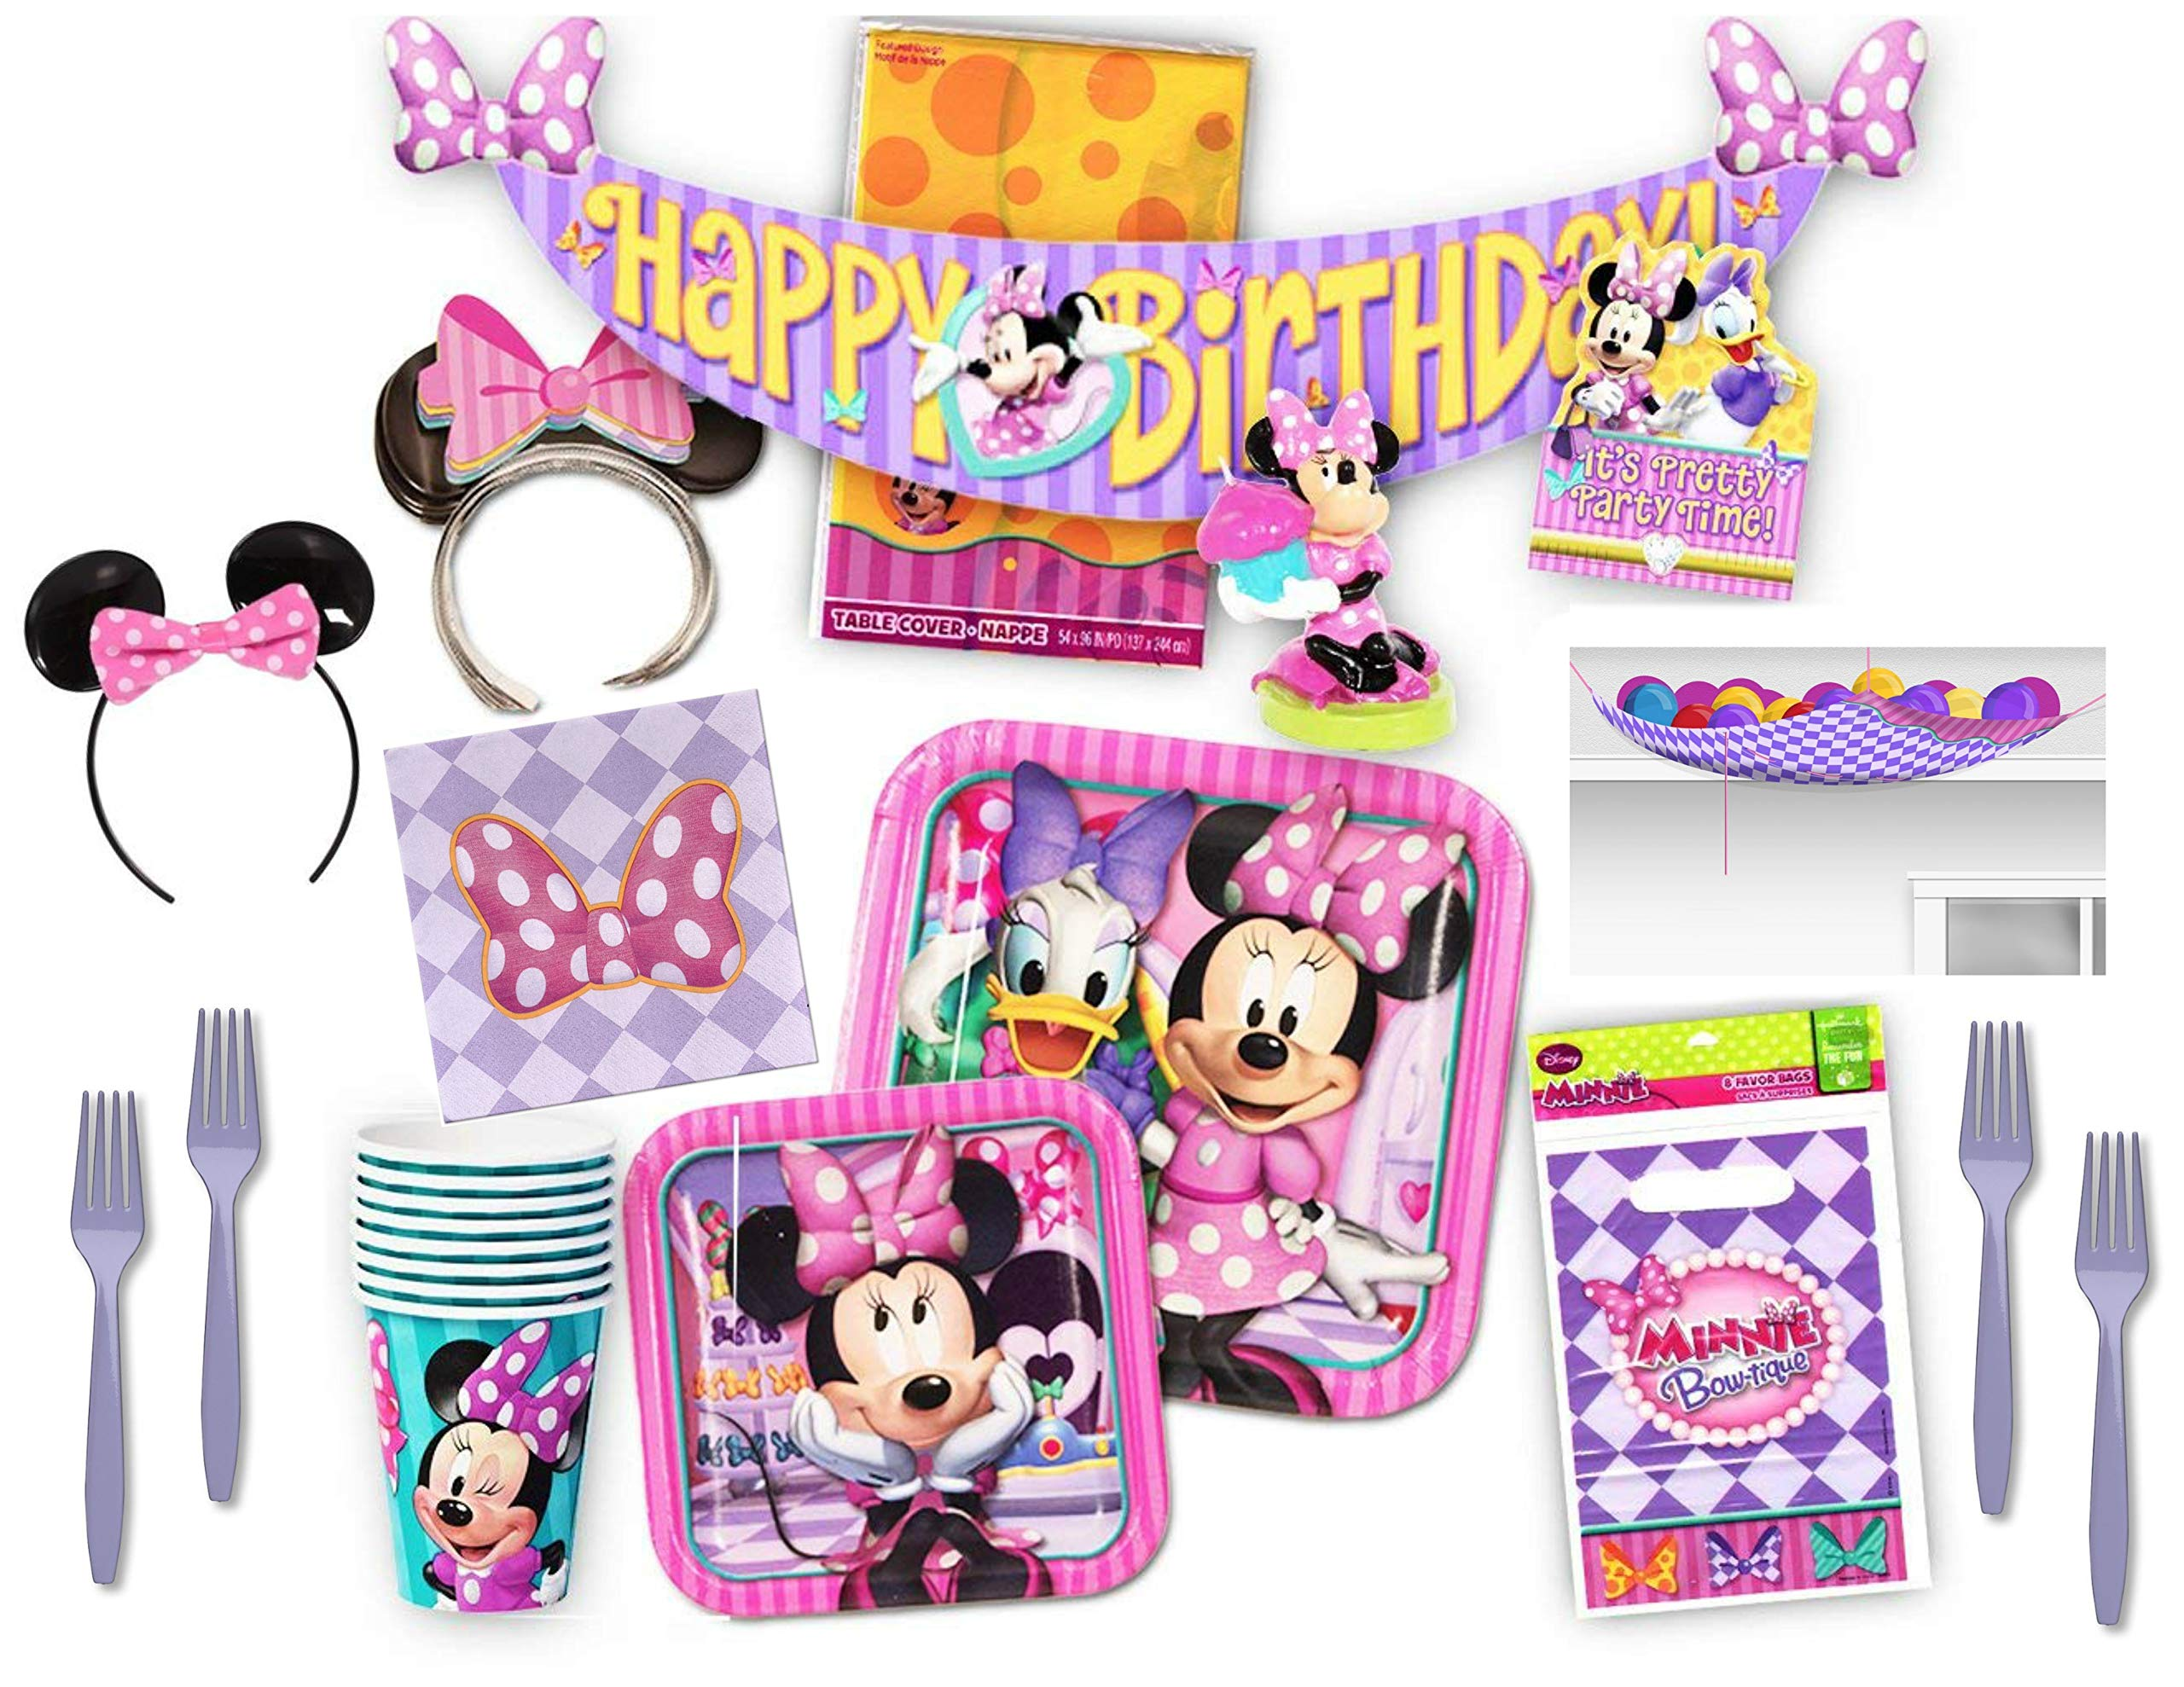 Minnie Mouse Bow-tique Mega Party Supply Bundle for 8 Guests - Plates, Napkins, Cups, Tablecover, Banner, Candle, Forks, Invitations/Thank Yous, Loot Bags, Party Ears and Party Game